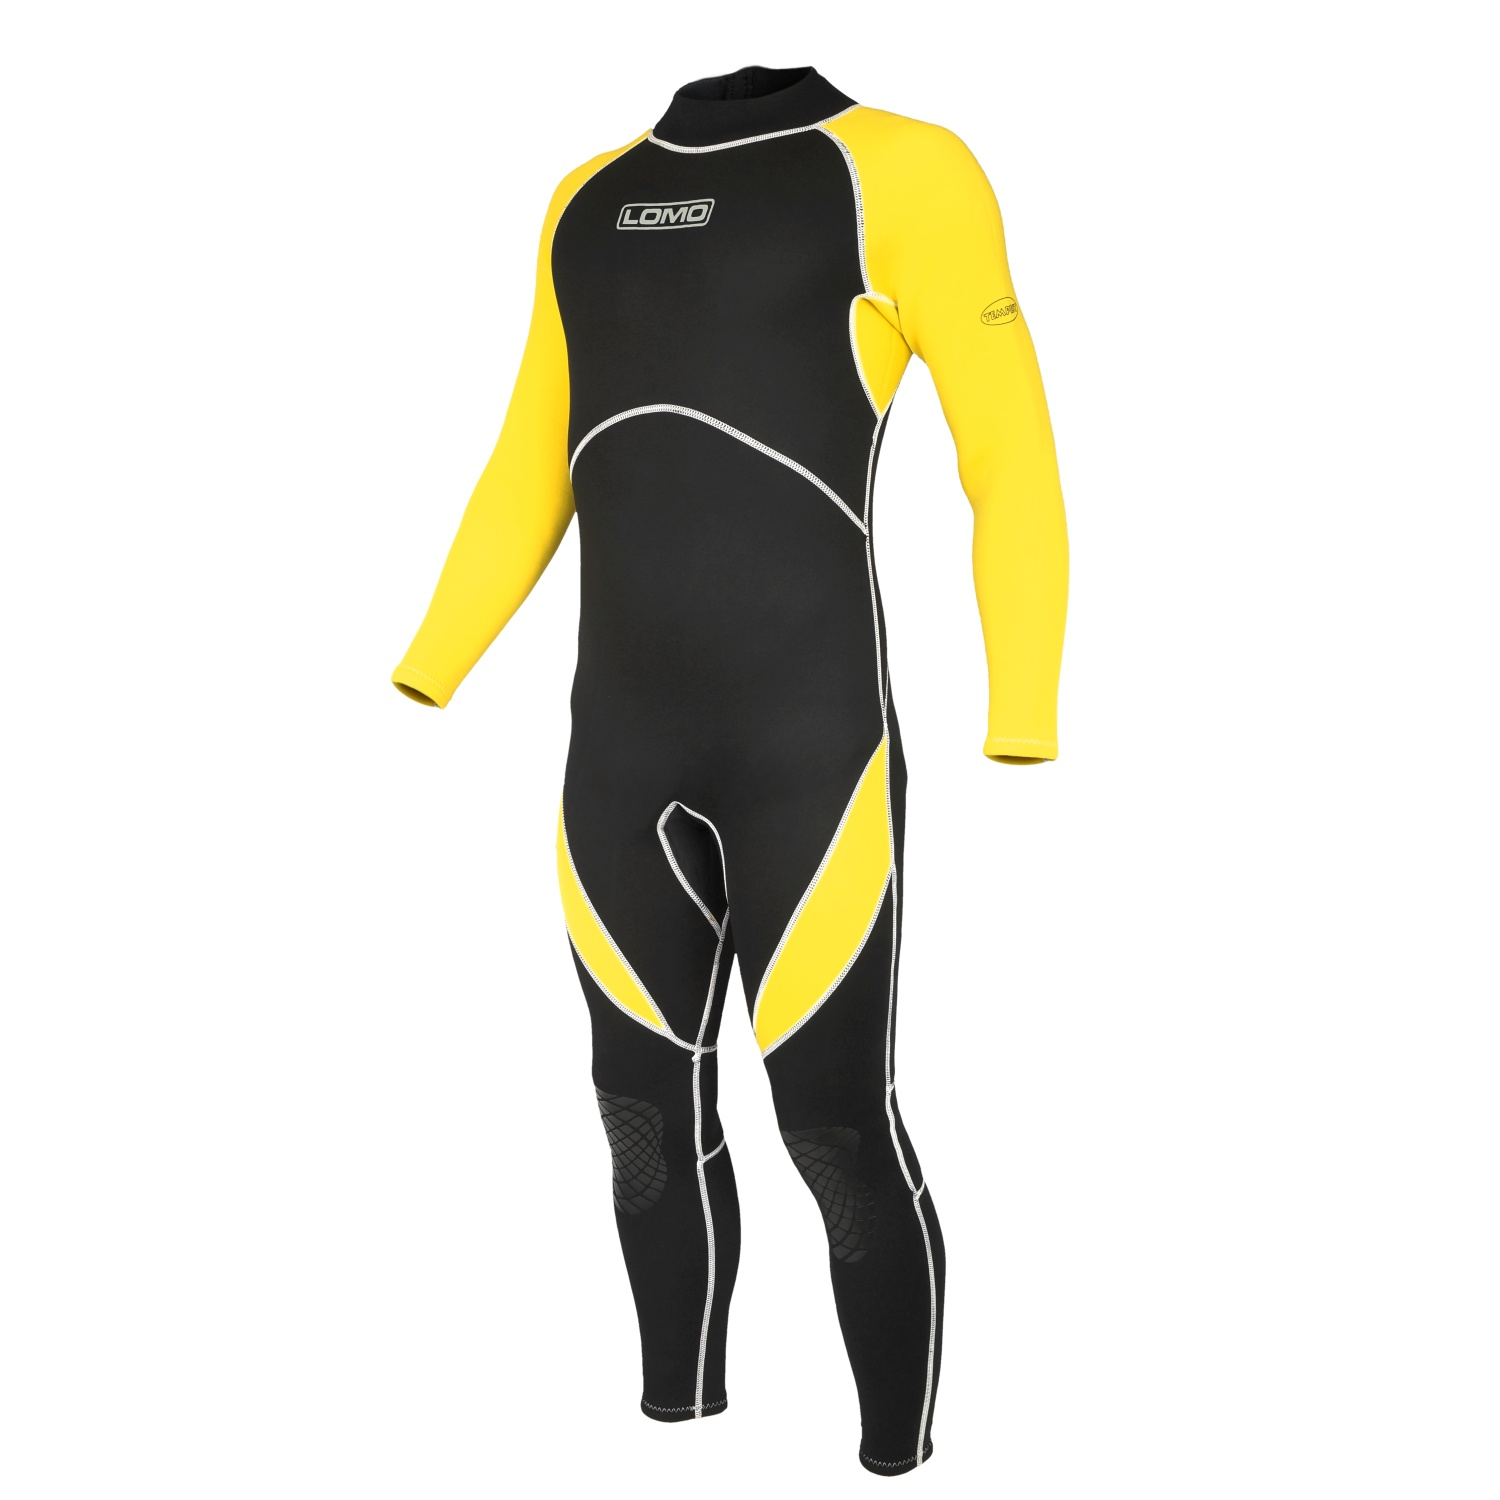 ae10b4434c1f0 Tempest Infants Wetsuit 3mm - Yellow   Black